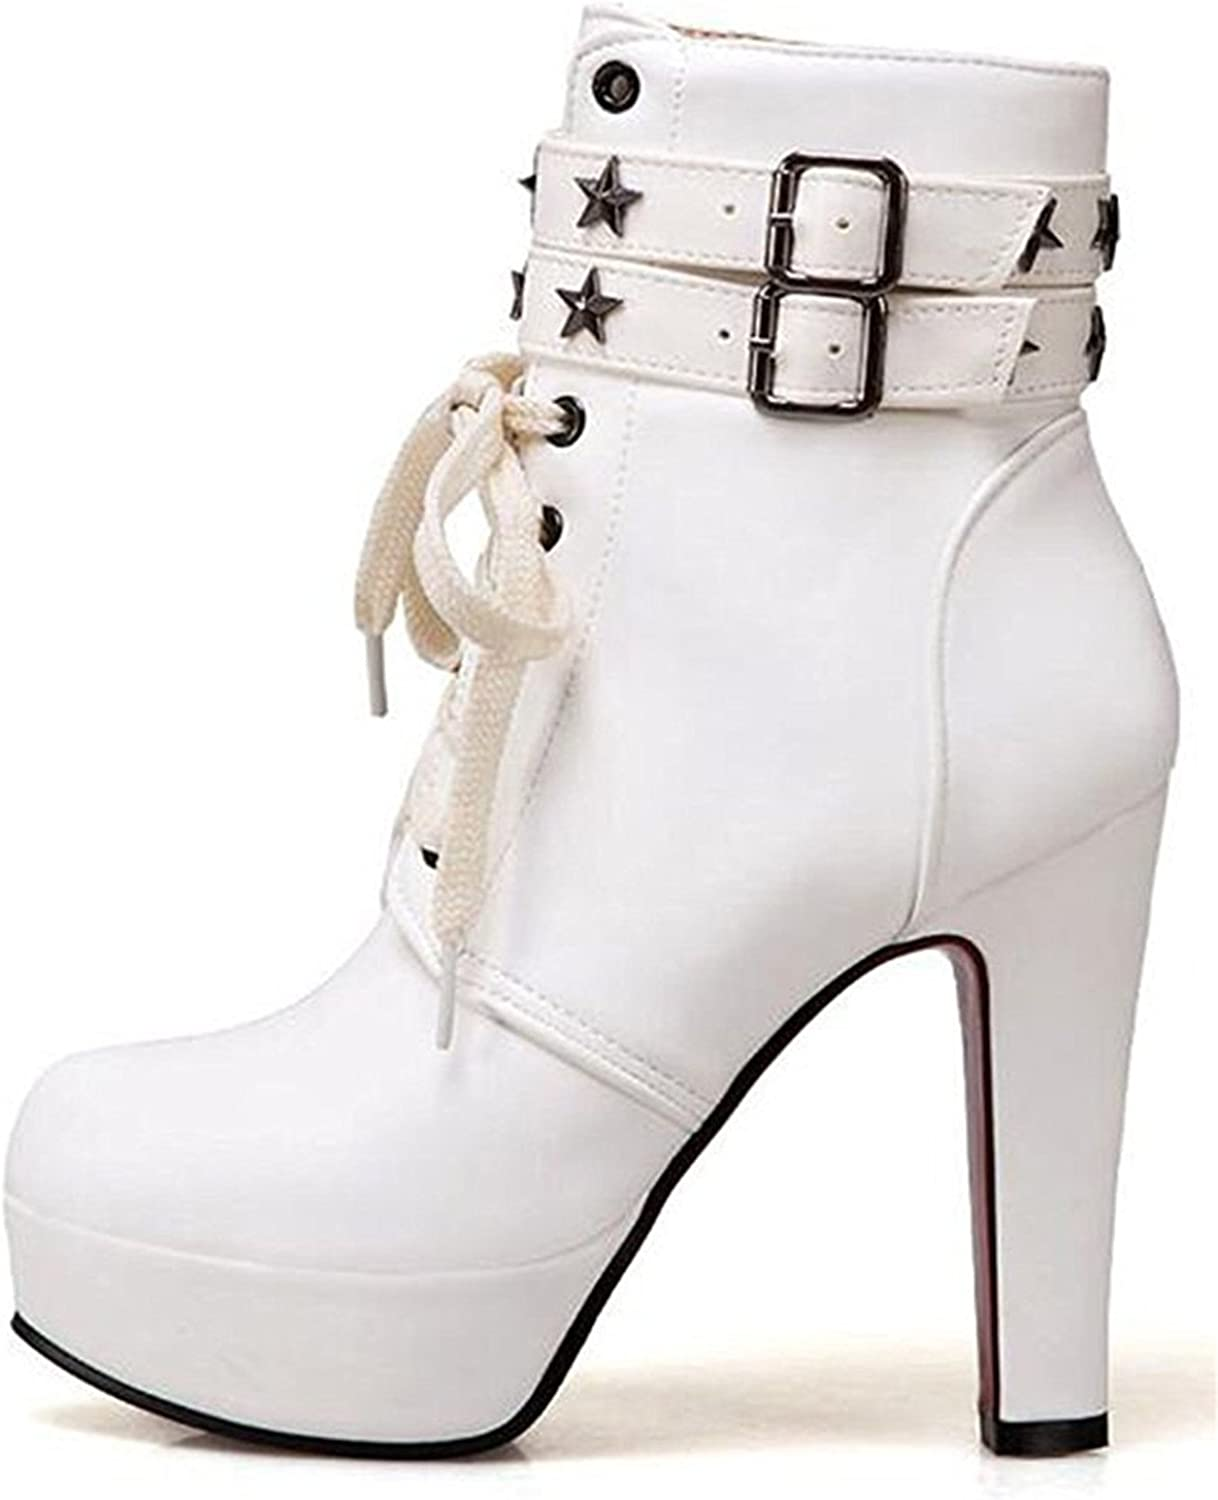 Robert Reyna Fashion Women's Studded Stars Buckled Straps Round Toe Chunky High Heel Platform Lace up Zipper up Ankle Booties